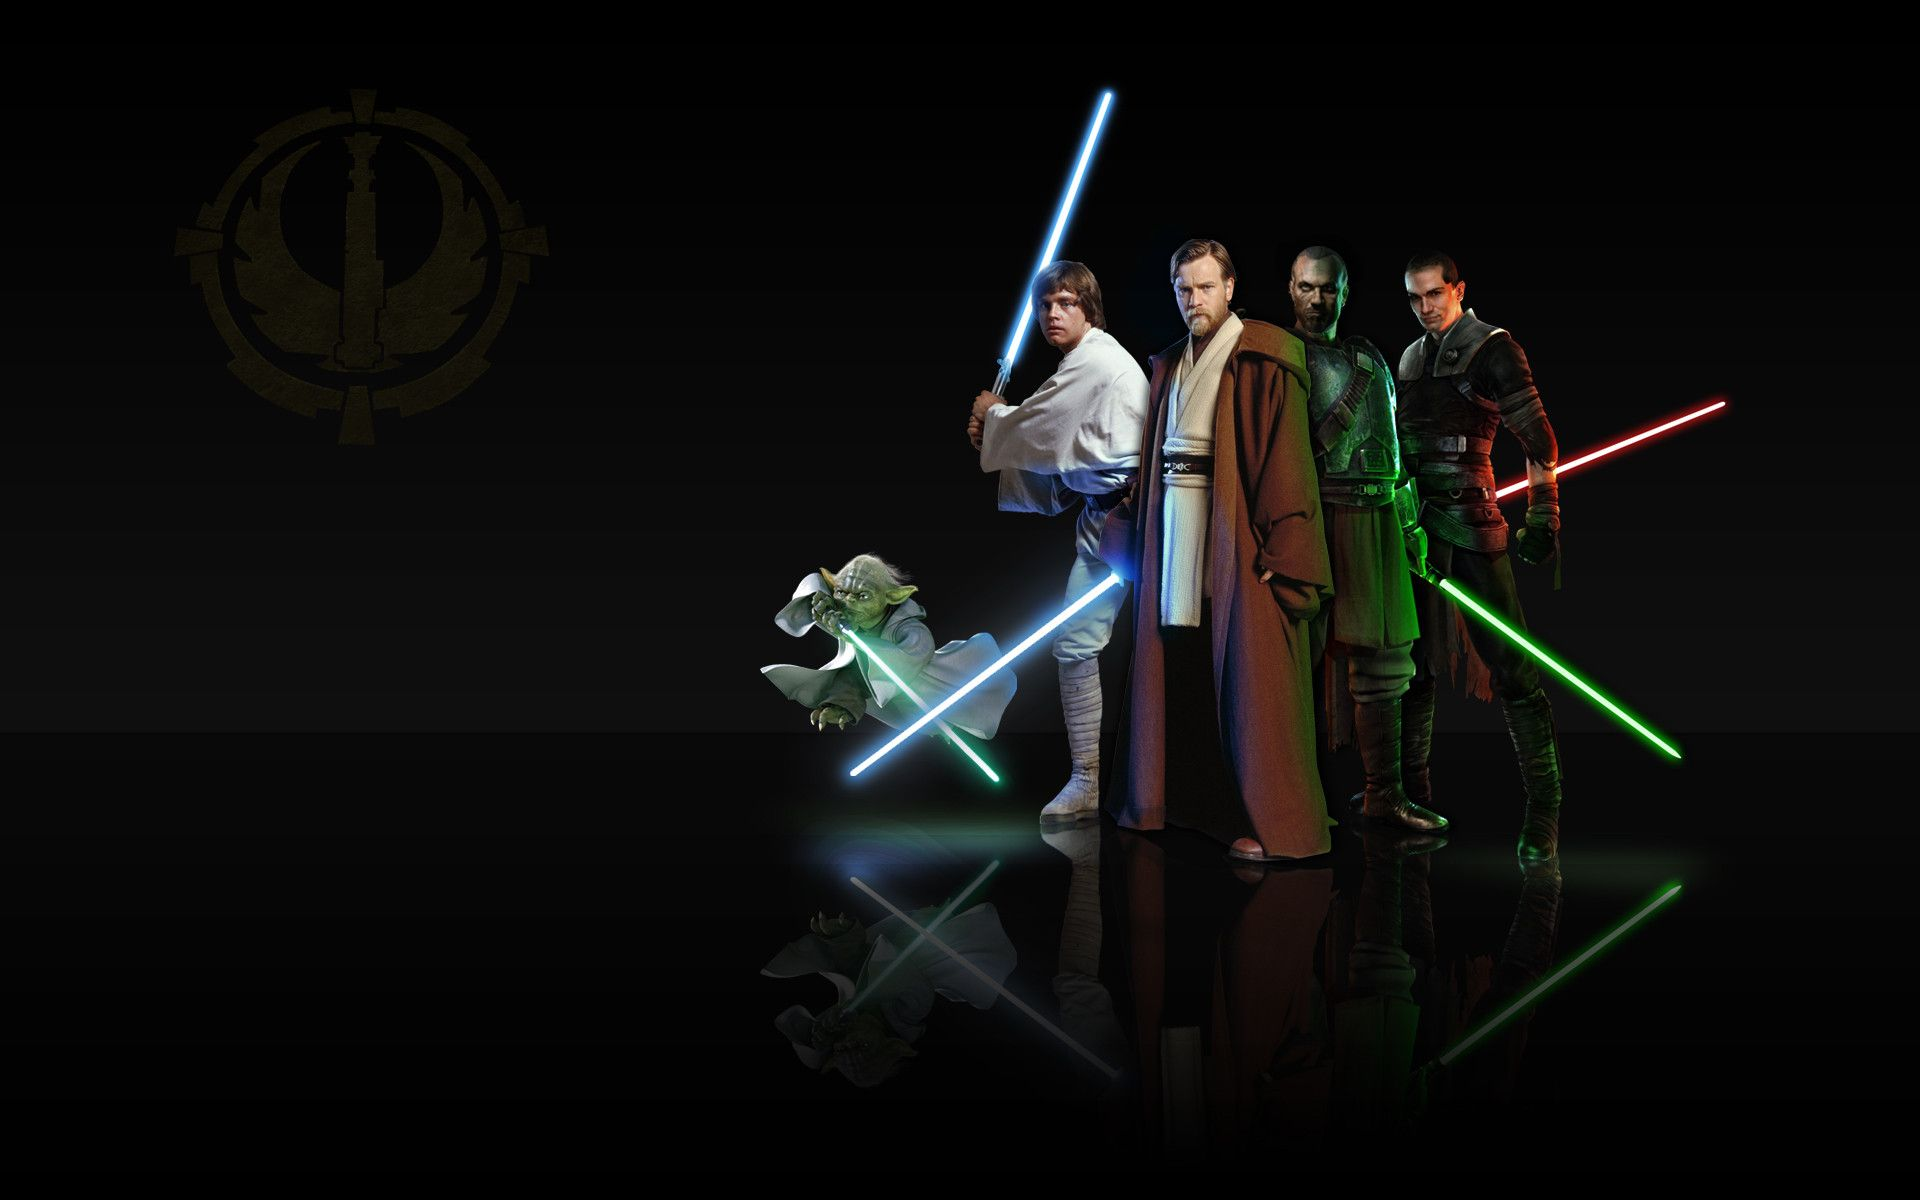 Starwars Wallpapers Wallpaper Cave Star Wars Pictures Star